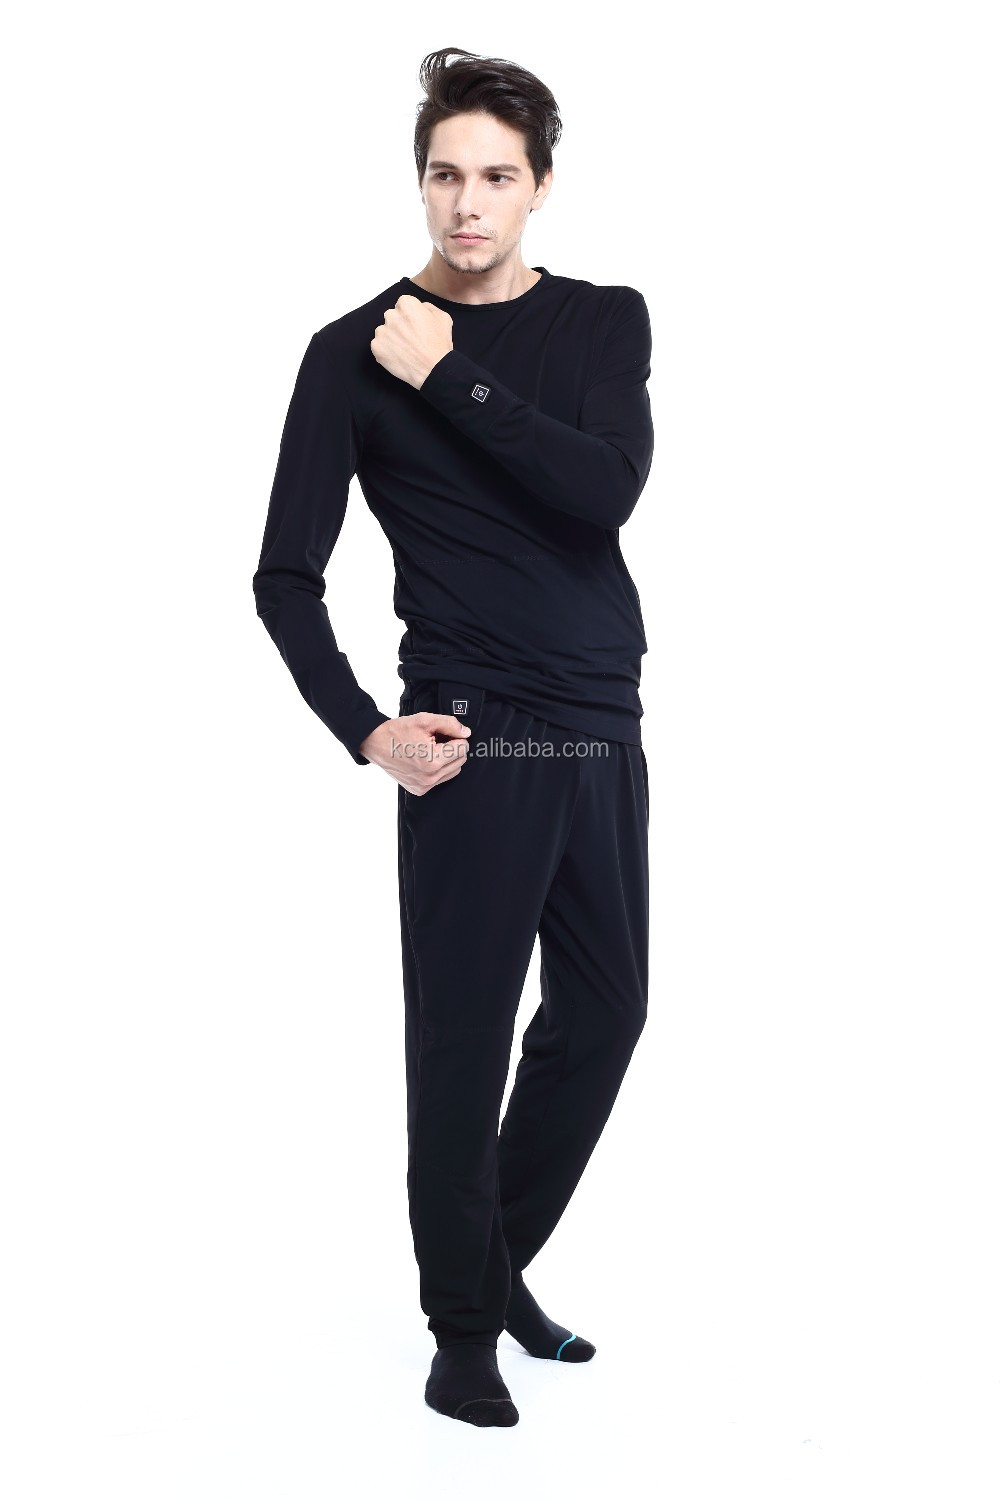 thermal breathable man long sleeve wool heated long underwear